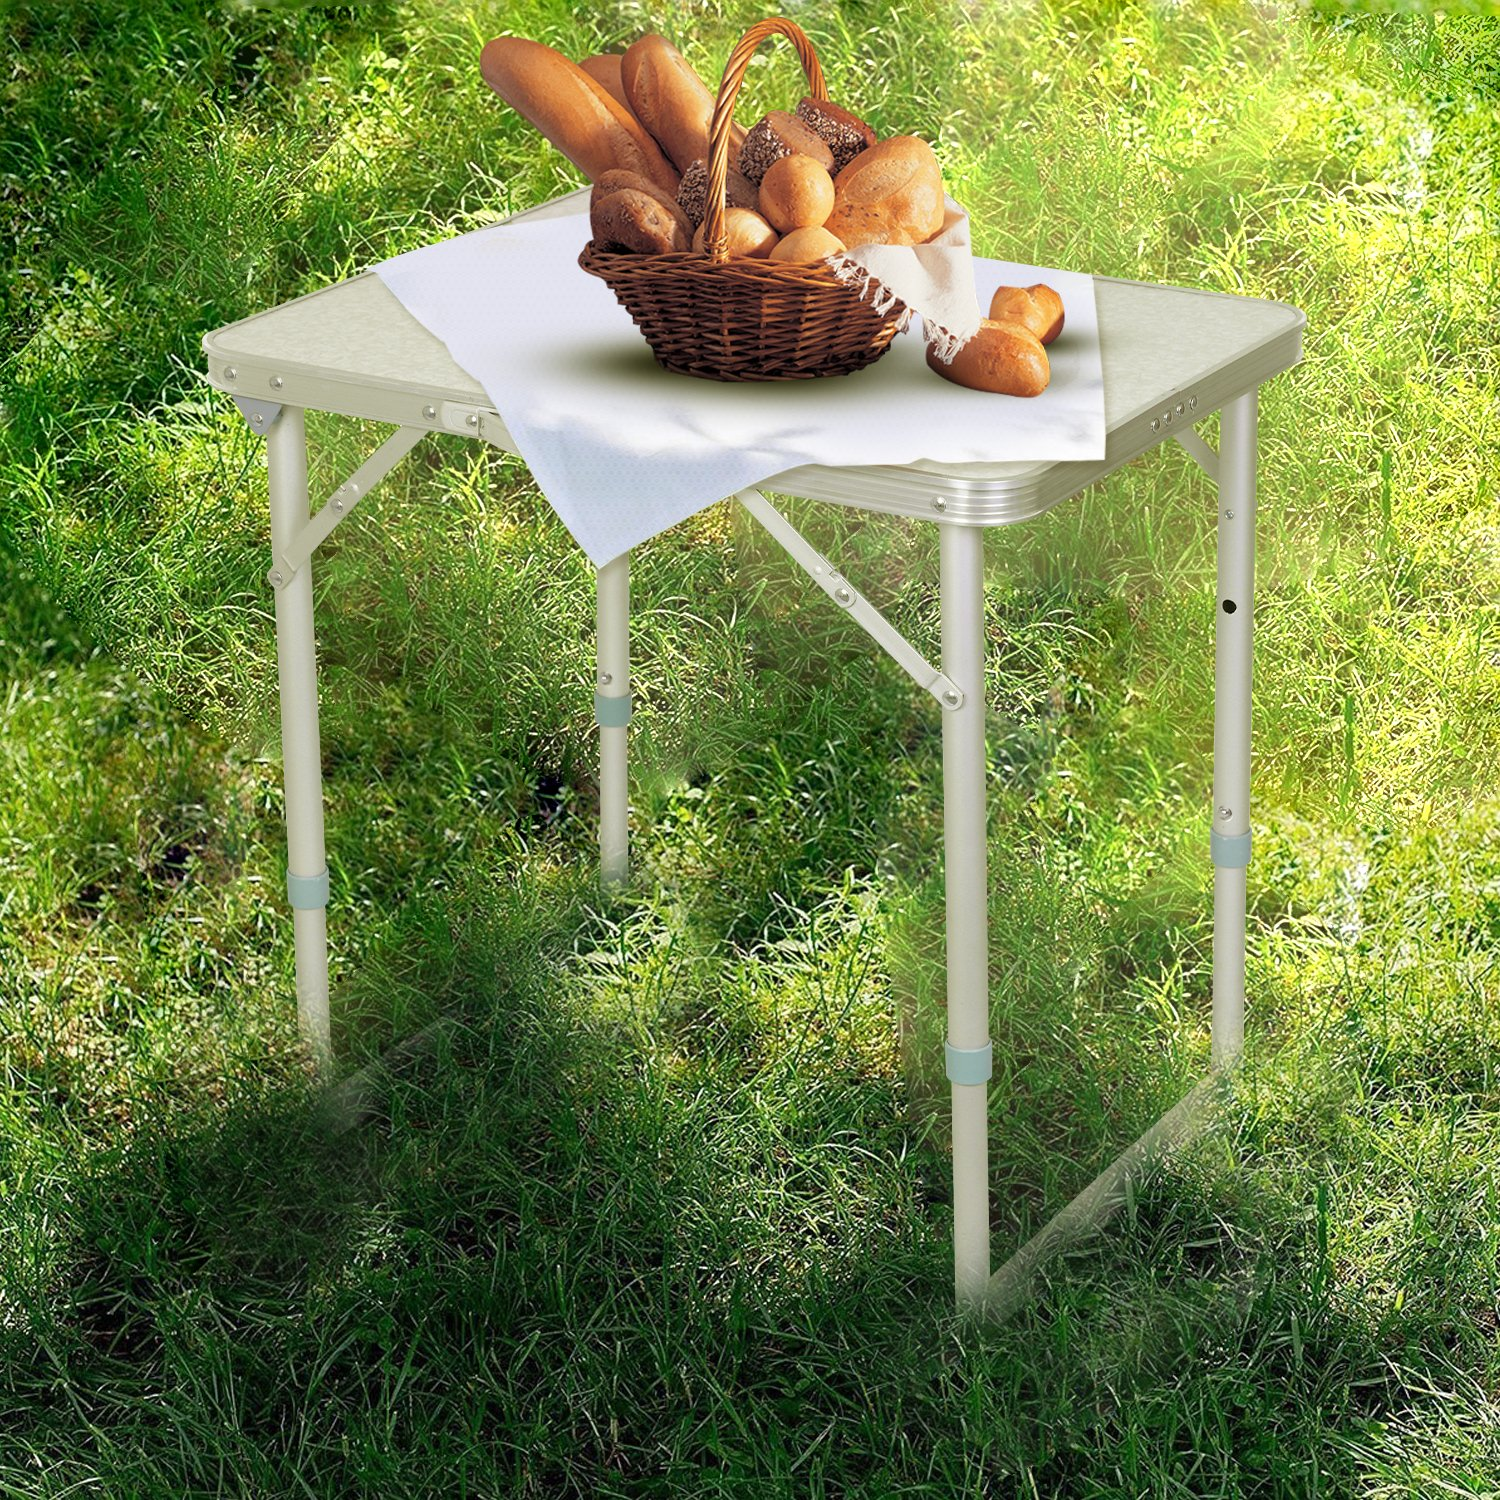 Folding Camping Table Adjule Portable Picnic Height With Handle Party On Clearance